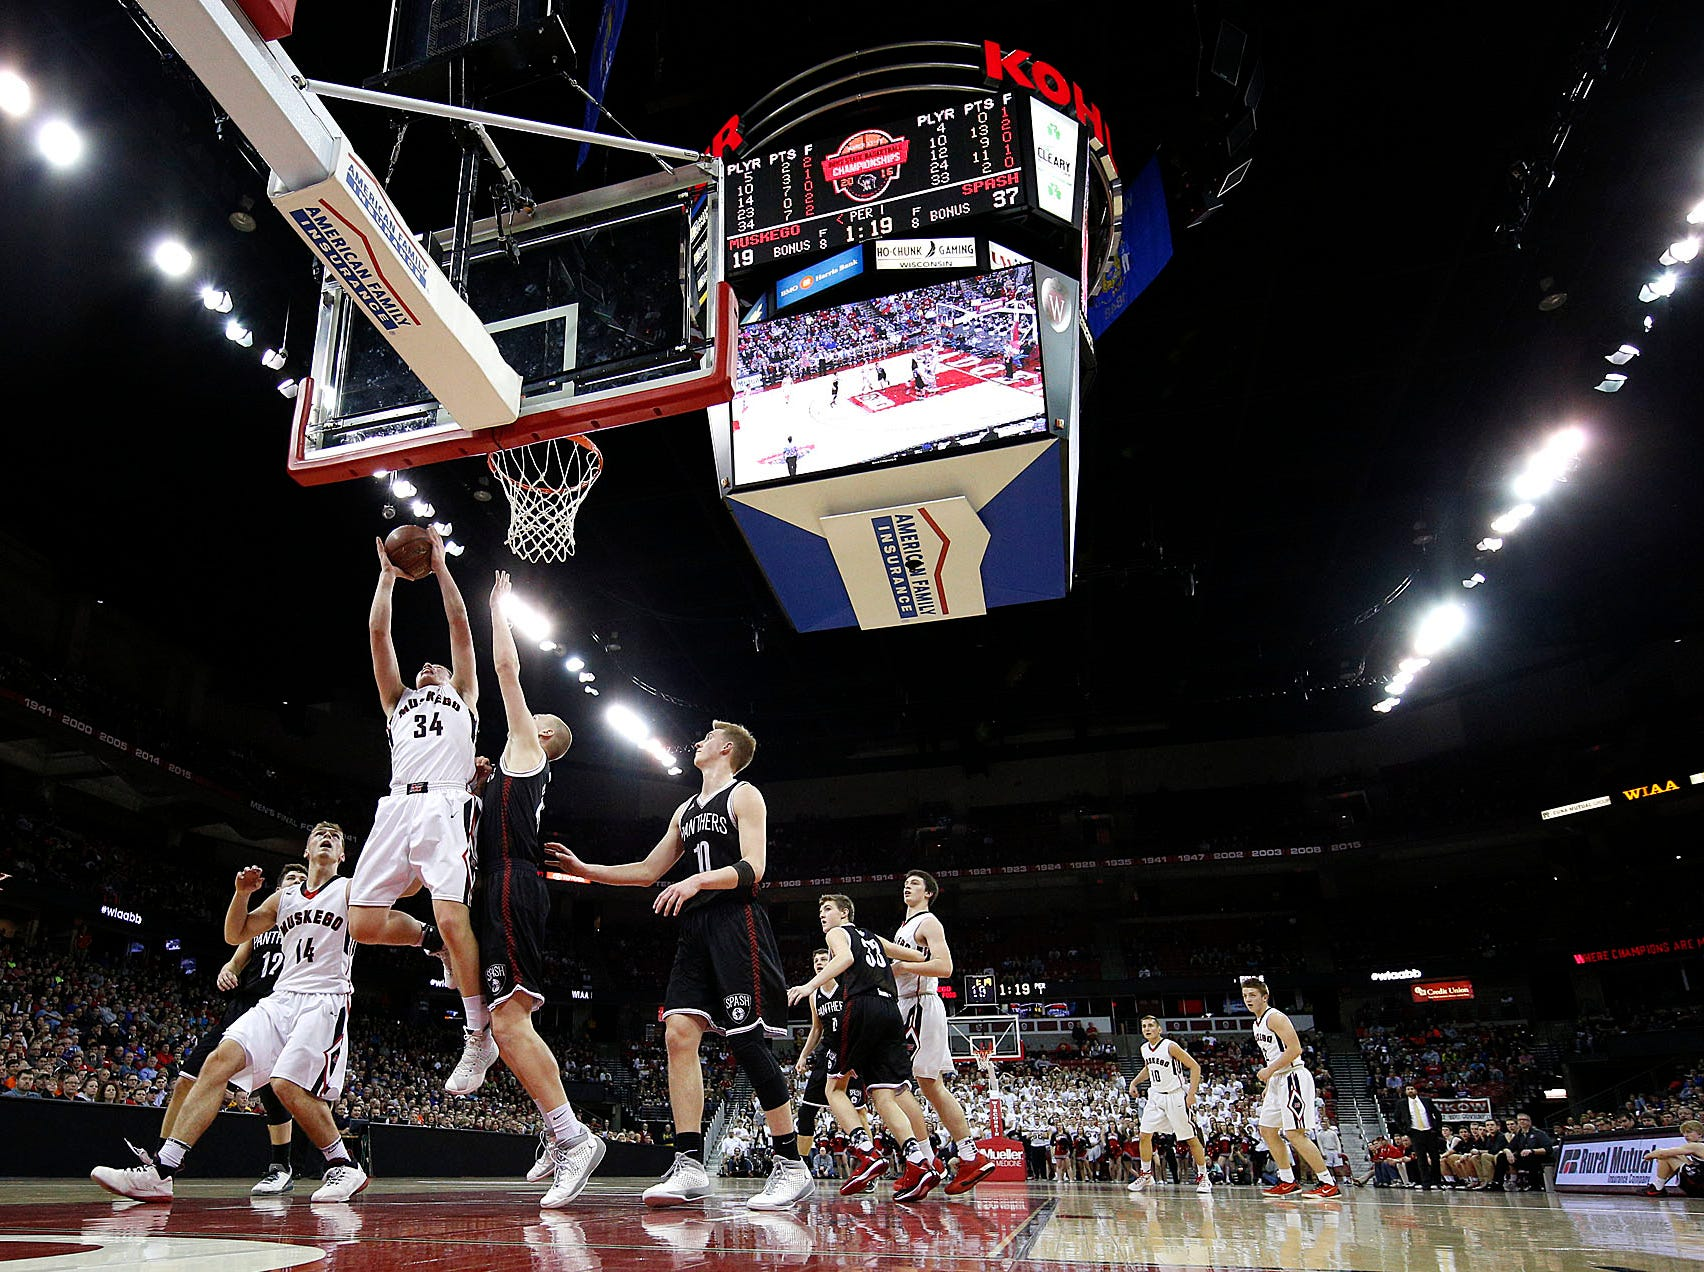 Muskego's  Tommy Andeson (34) attempts to shoot over Stevens Point's Sam Hauser as Matty Faner (14) looks on  during  the teams W.I.A.A. Boys State Basketball Tournament championship game in the Kohl Center Saturday, March 19, 2016, in Madison, Wisconsin. Stevens Point won the game 89-64.